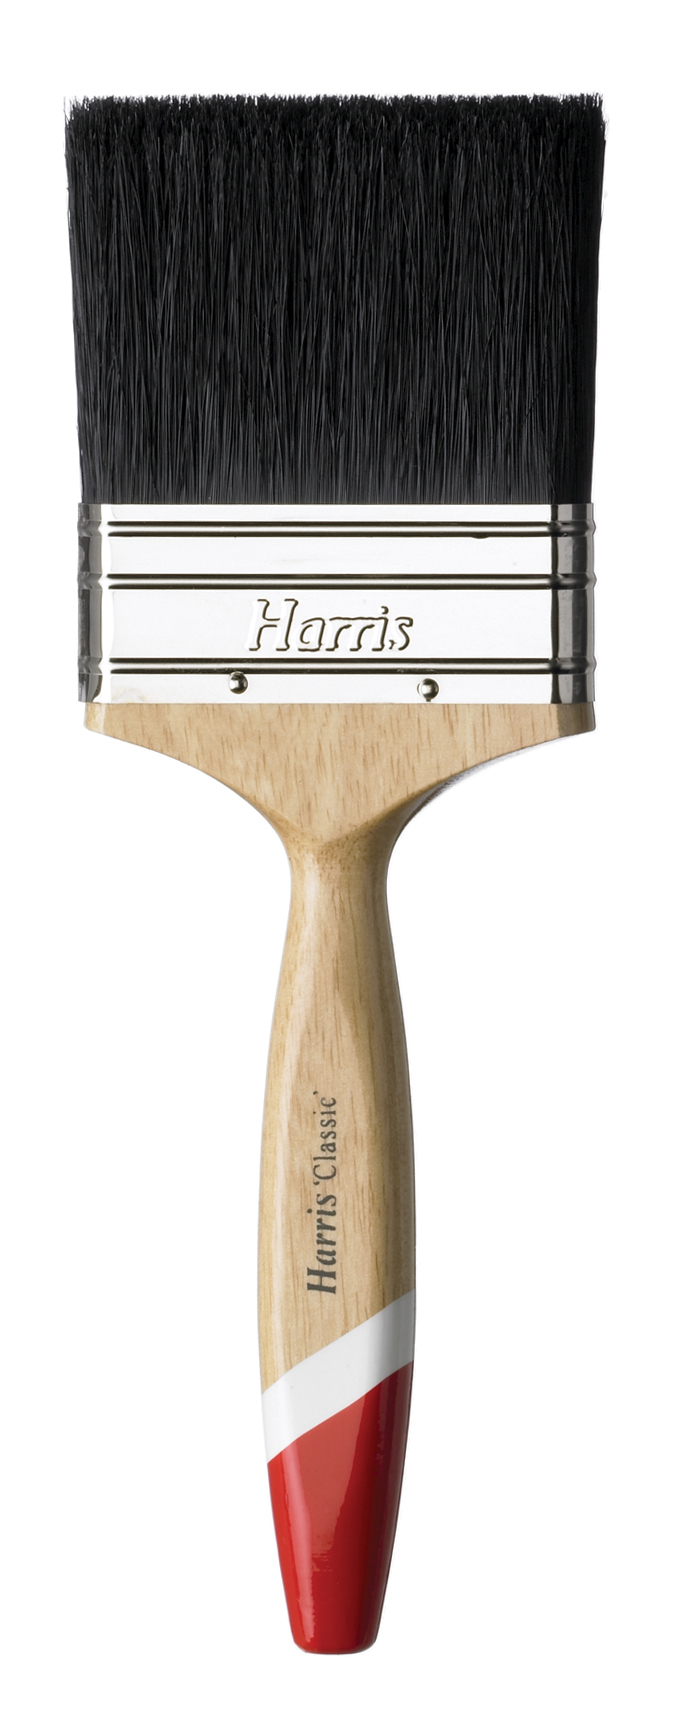 HARRIS  CLASSIC PAINT BRUSH 3